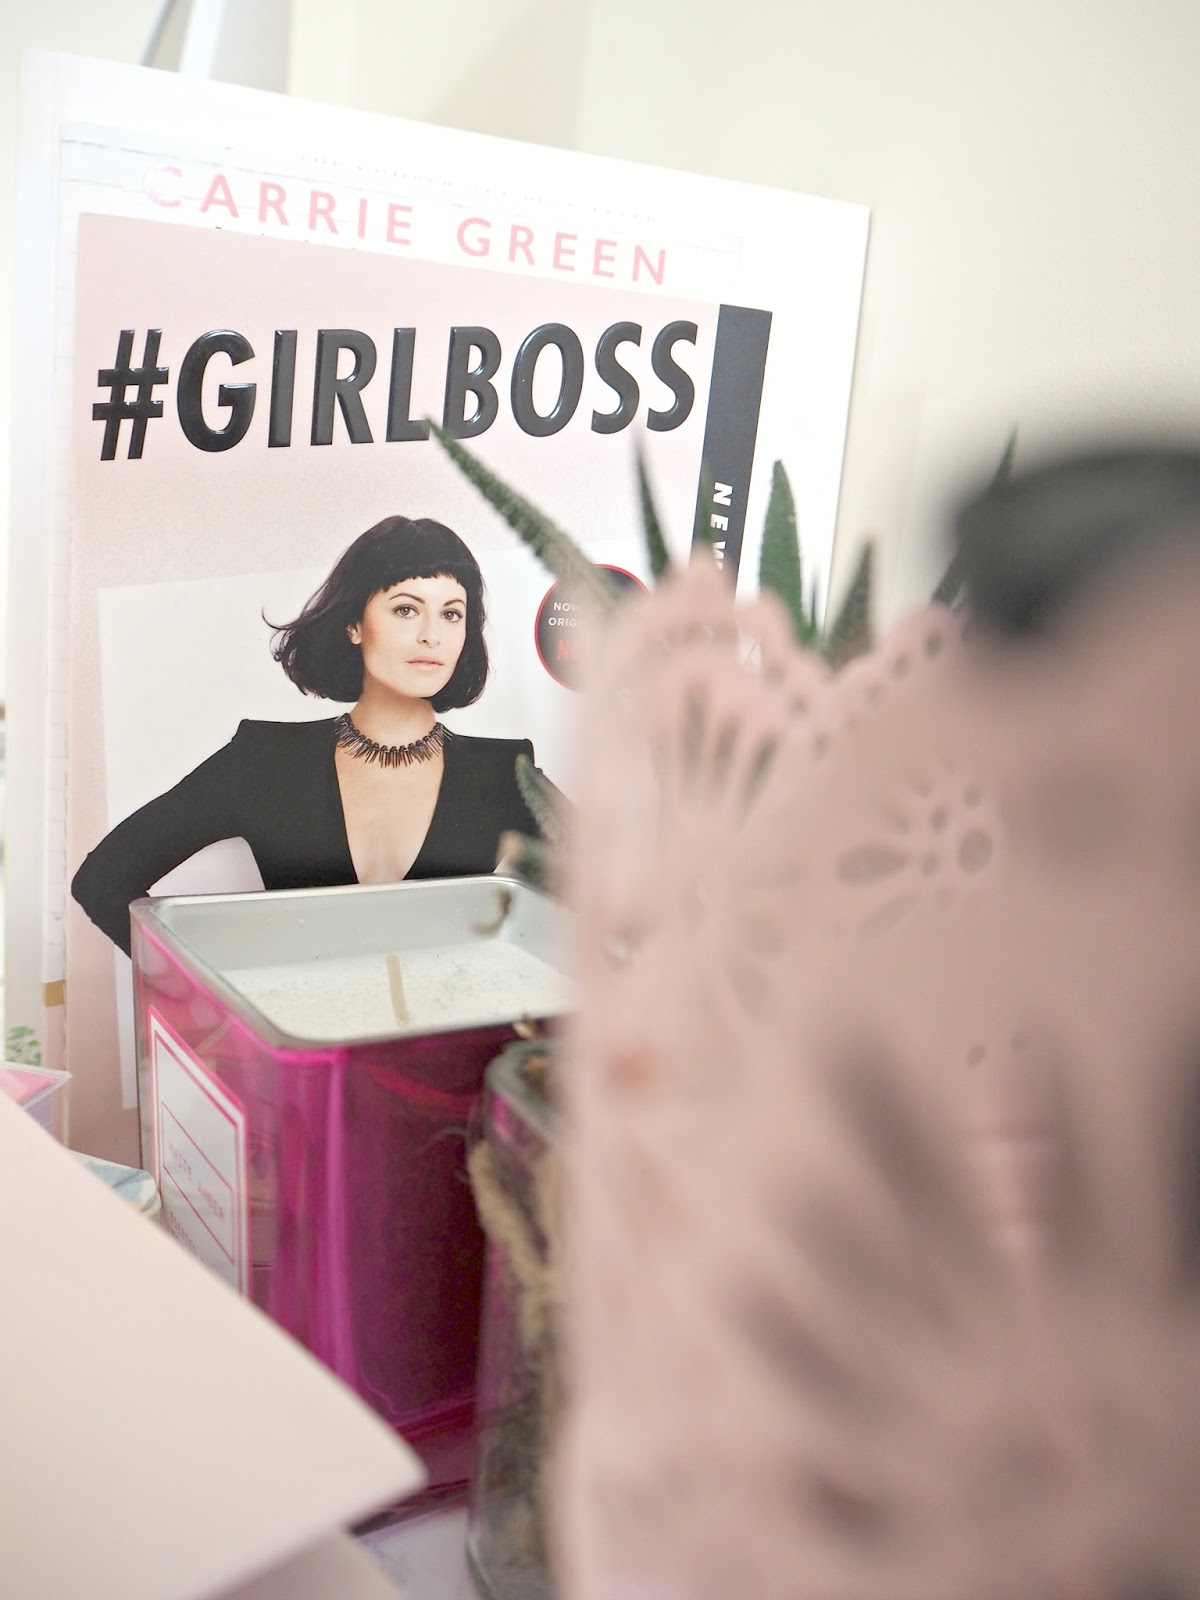 SOME NEW READING MATERIAL | #GIRLBOSS | Love, Maisie | www.lovemaisie.com